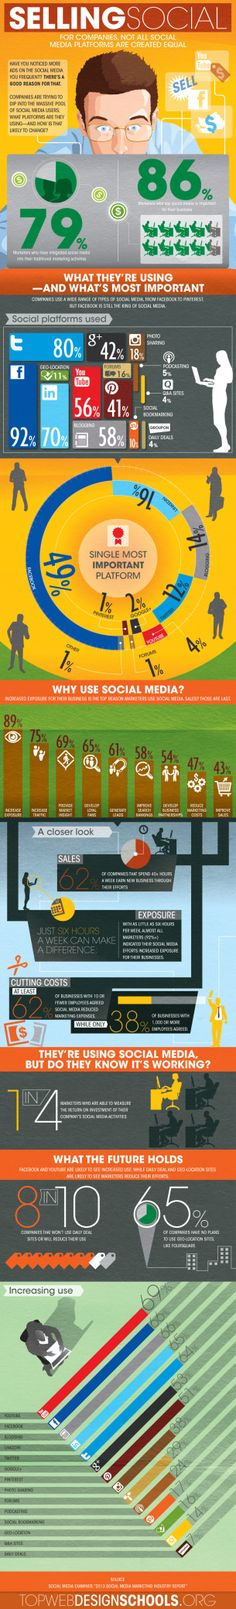 Selling Social: For Companies, Not All Social Media Platforms Are Created Equal [INFOGRAPHIC] #media#platforms